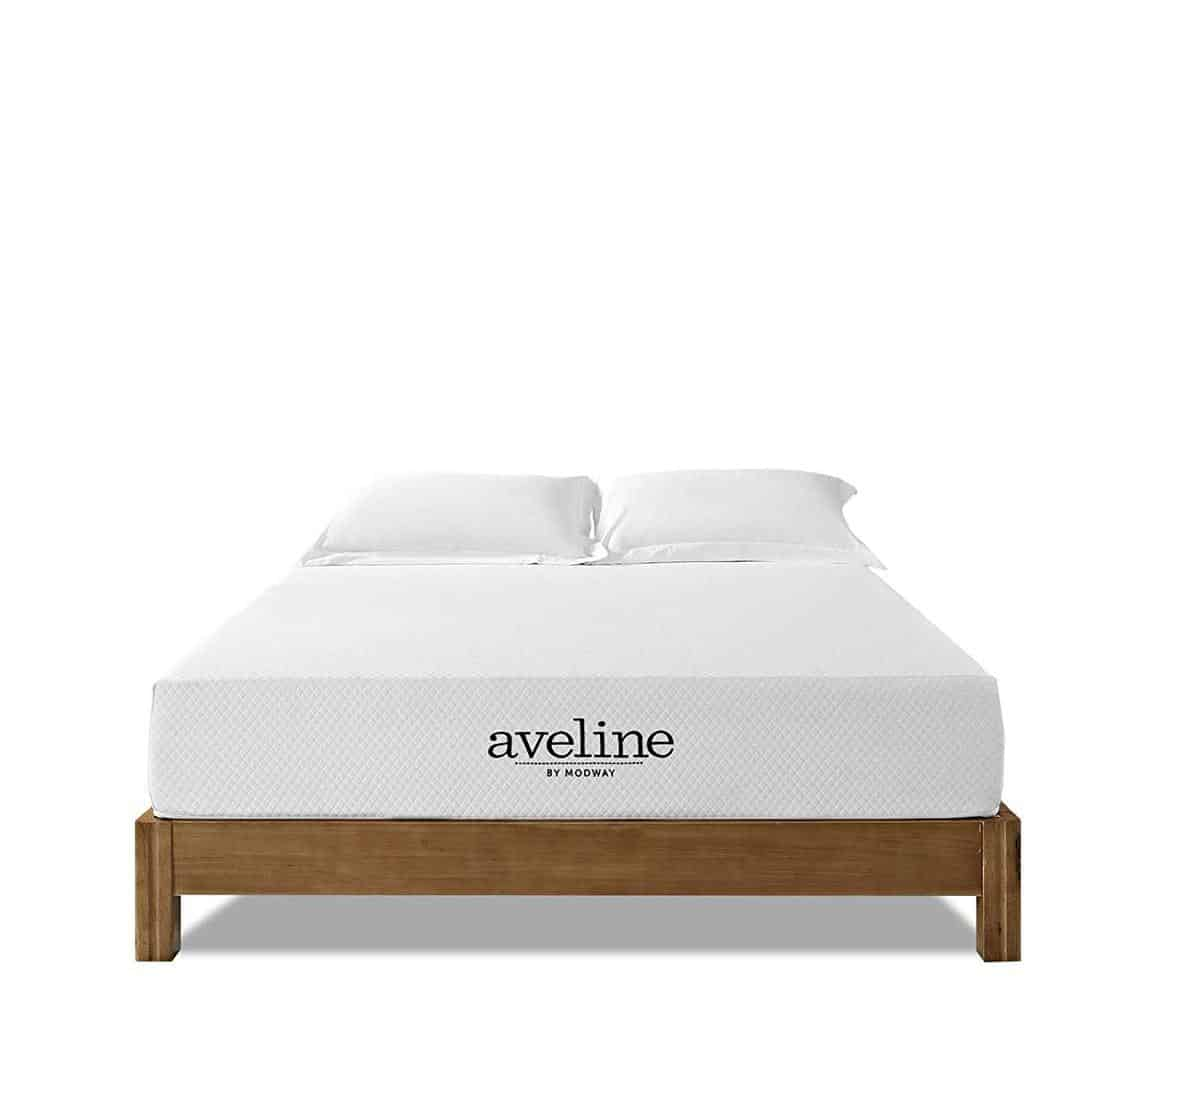 Modway Aveline Gel Infused Memory Foam Mattress